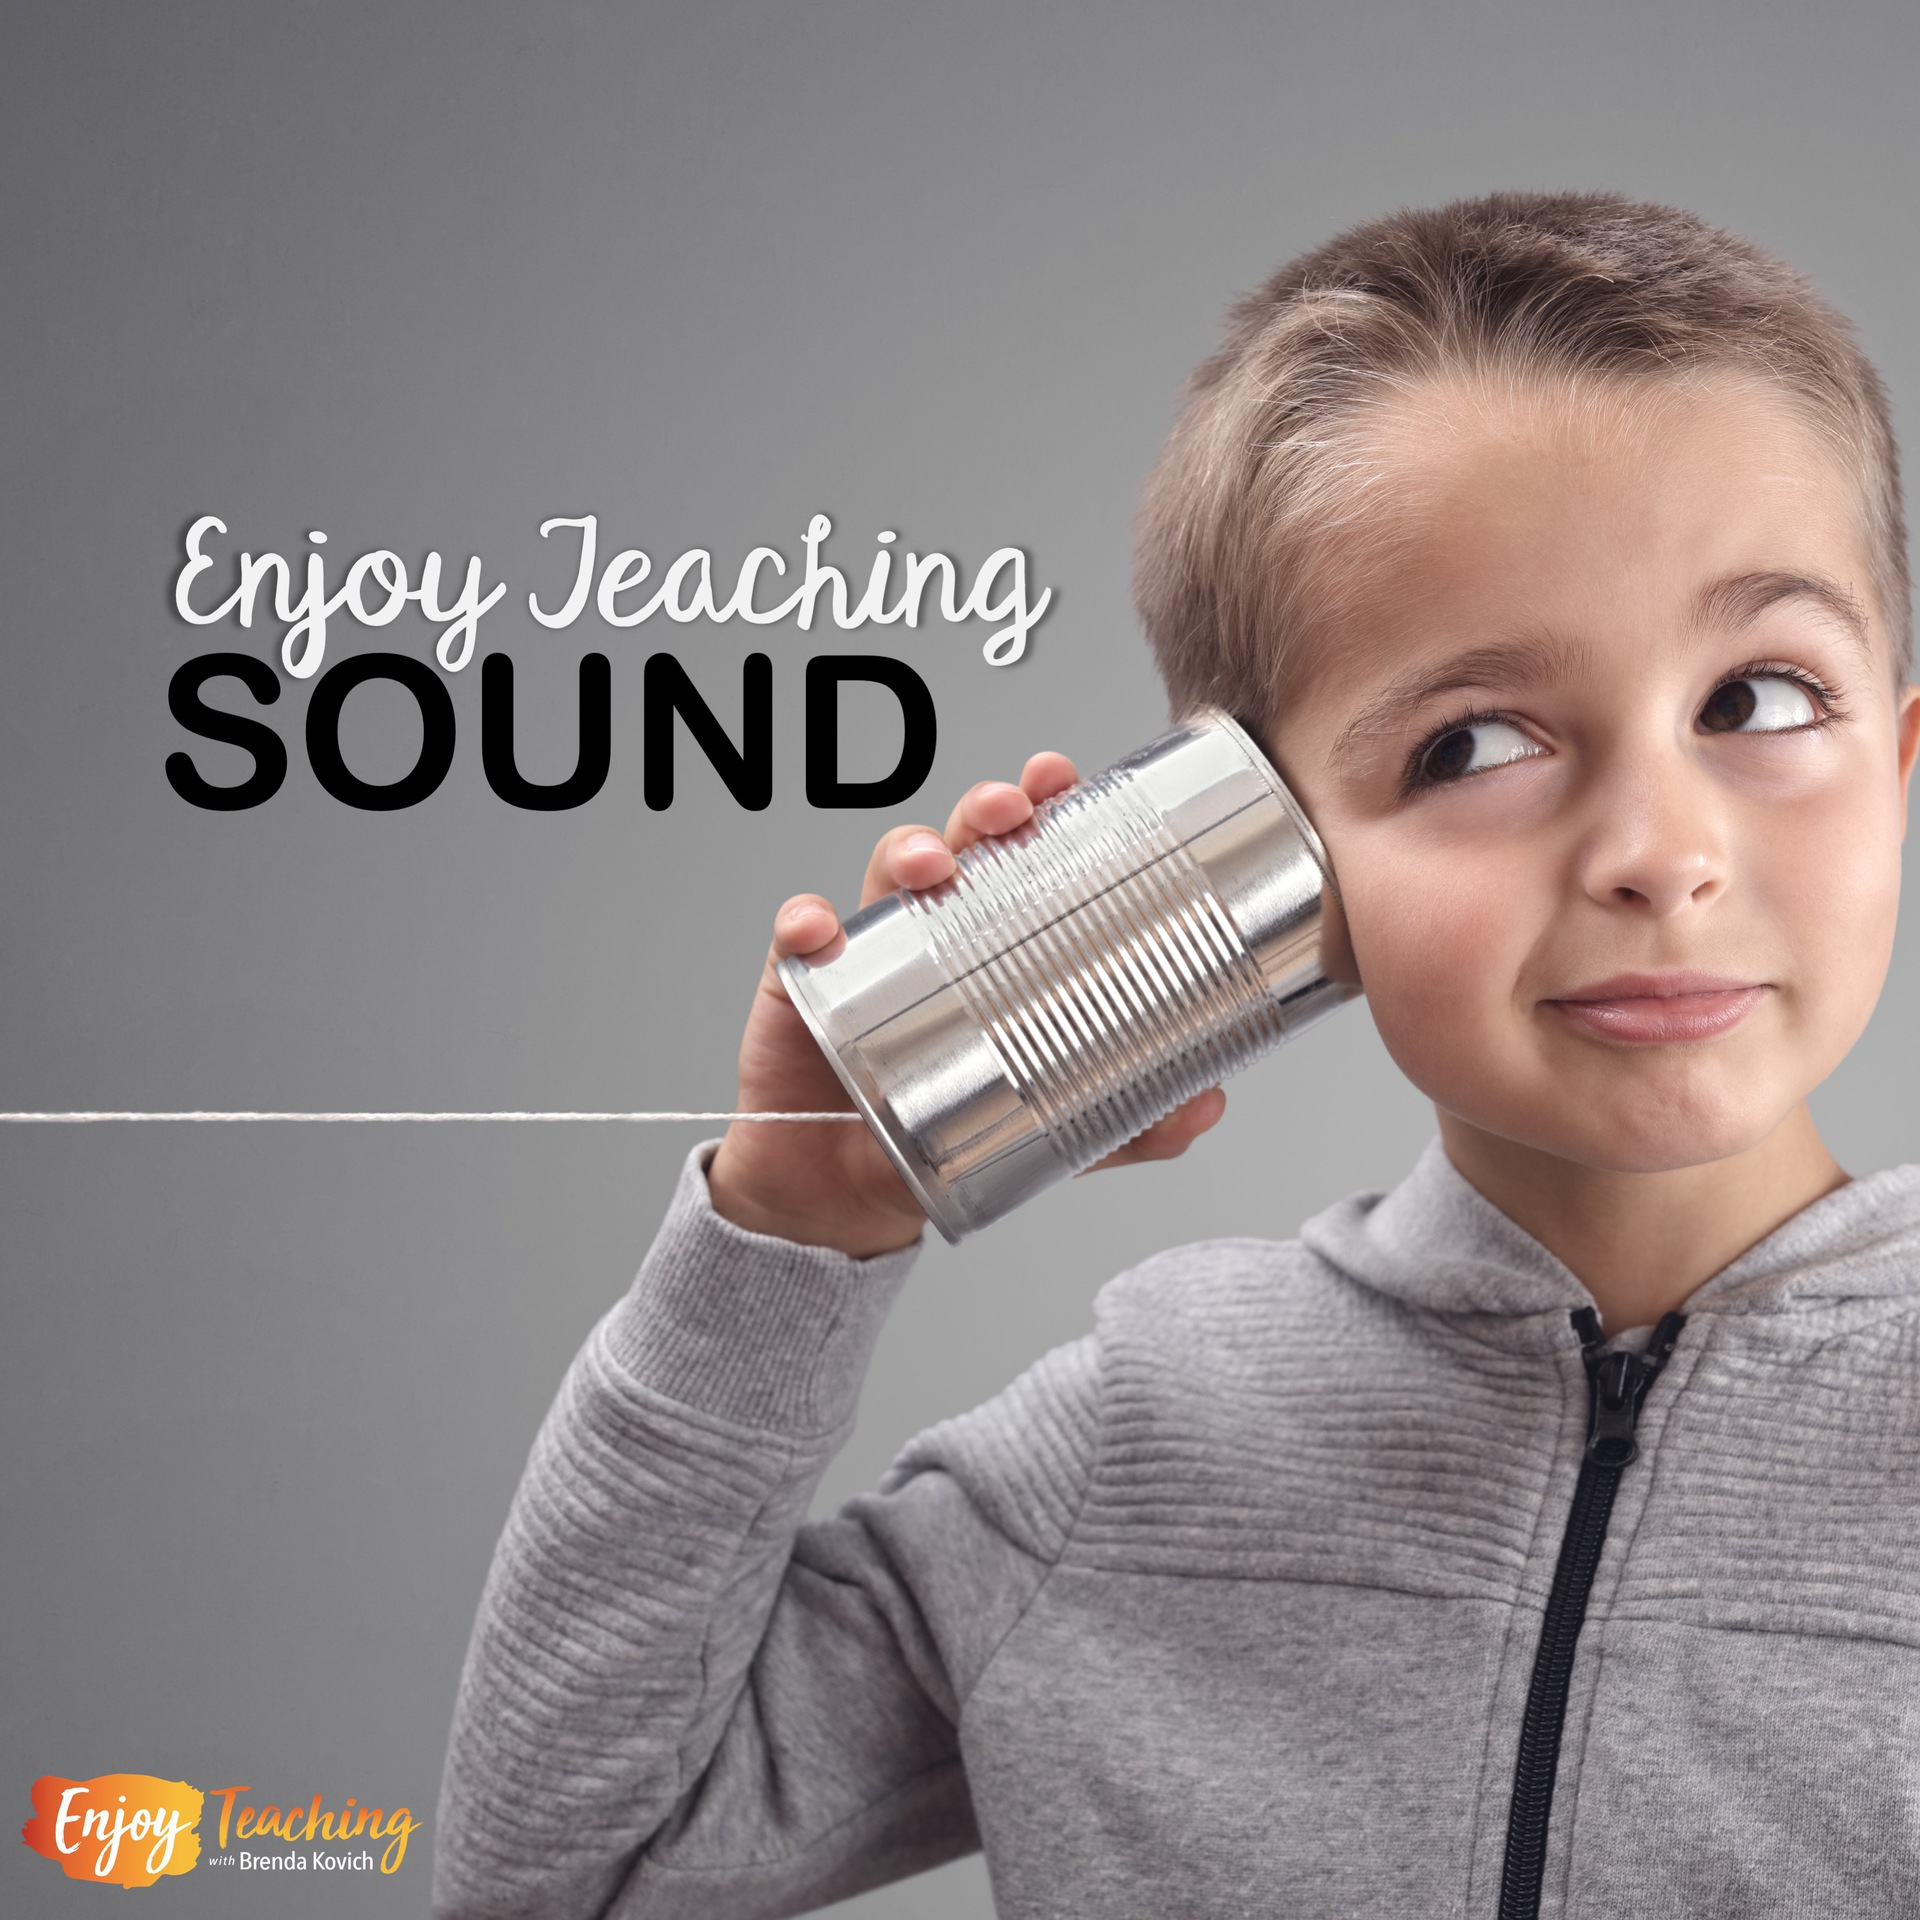 Enjoy Teaching Sound with Physics Activities for Kids - Enjoy